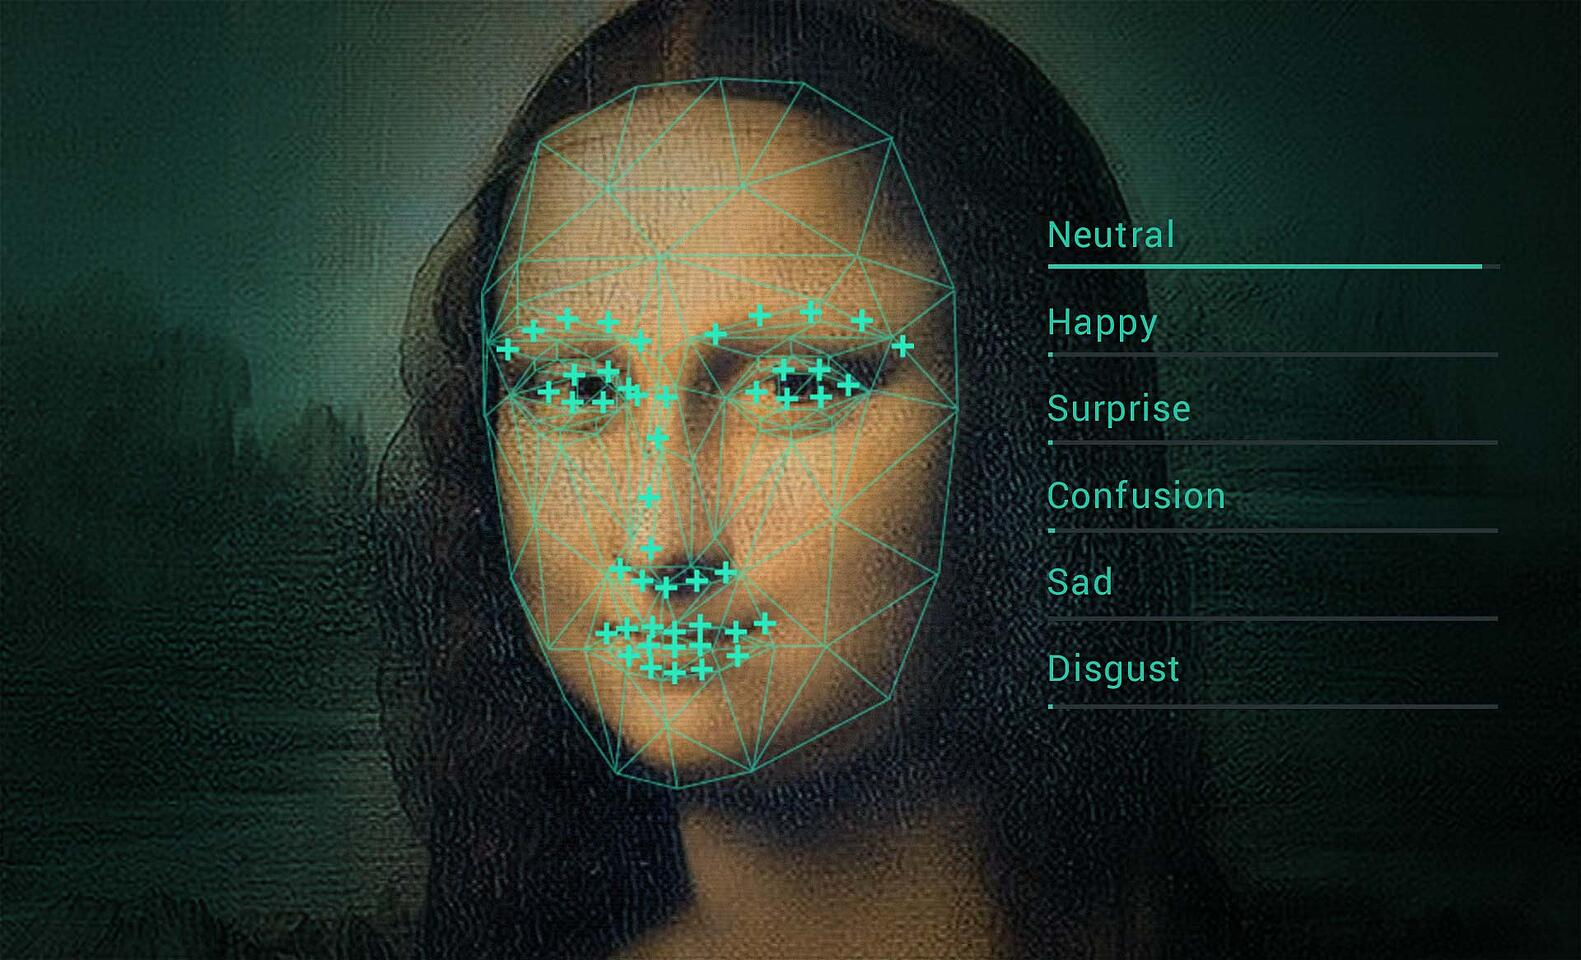 Realeyes facial coding and emotion recognition for Mona Lisa